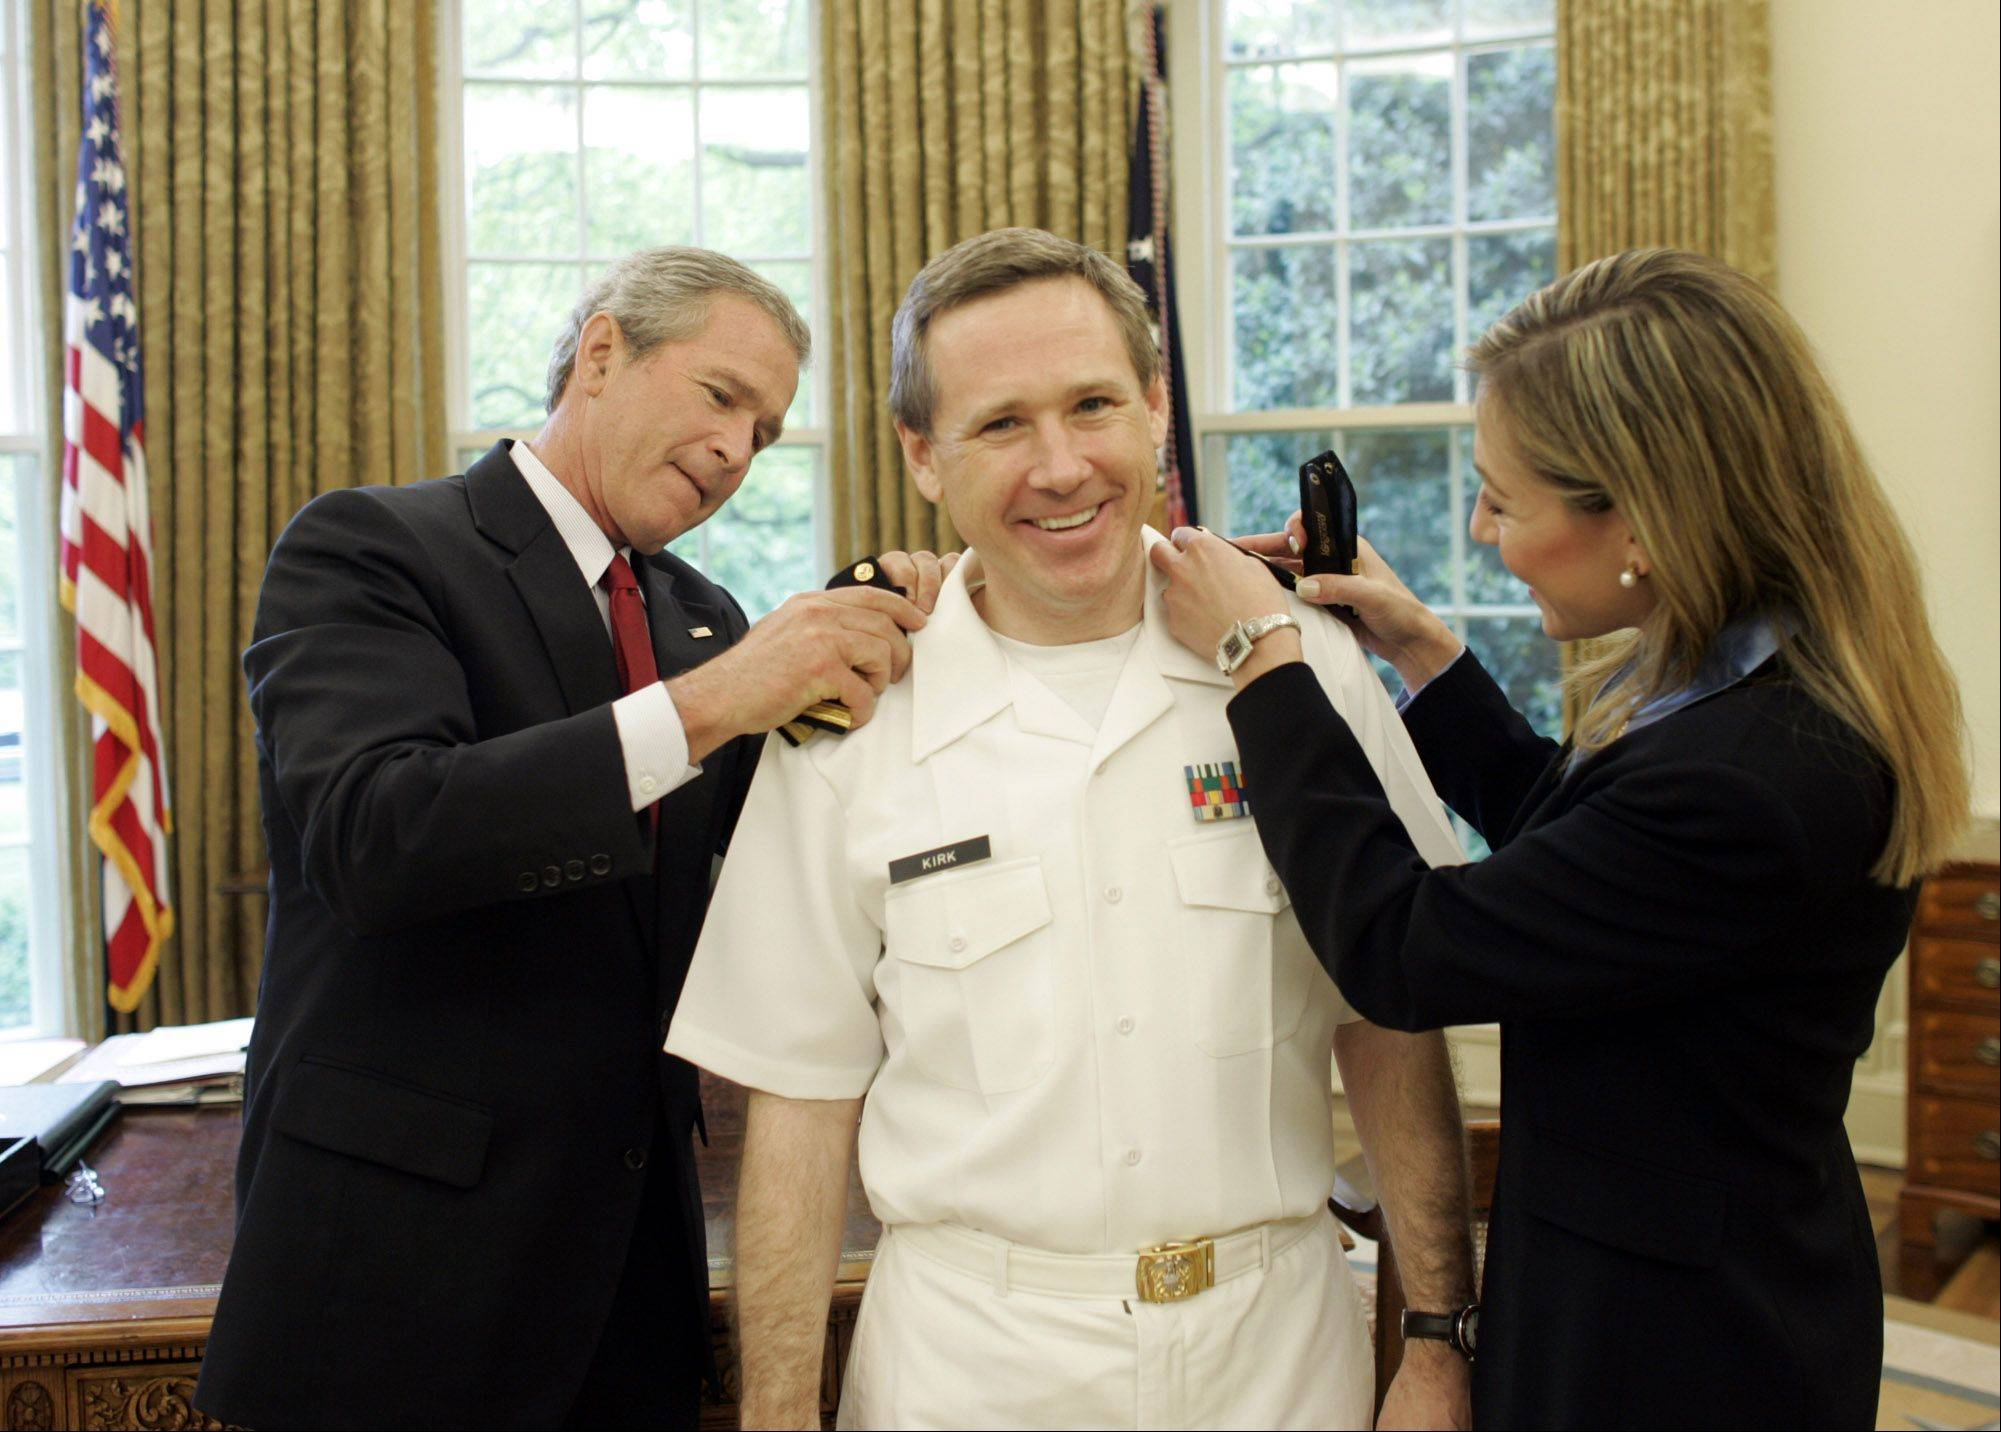 President George W. Bush presides over Rep. Mark Kirk's promotion from Lieutenant Commander to the rank of Commander in the�U.S. Naval Reserves.